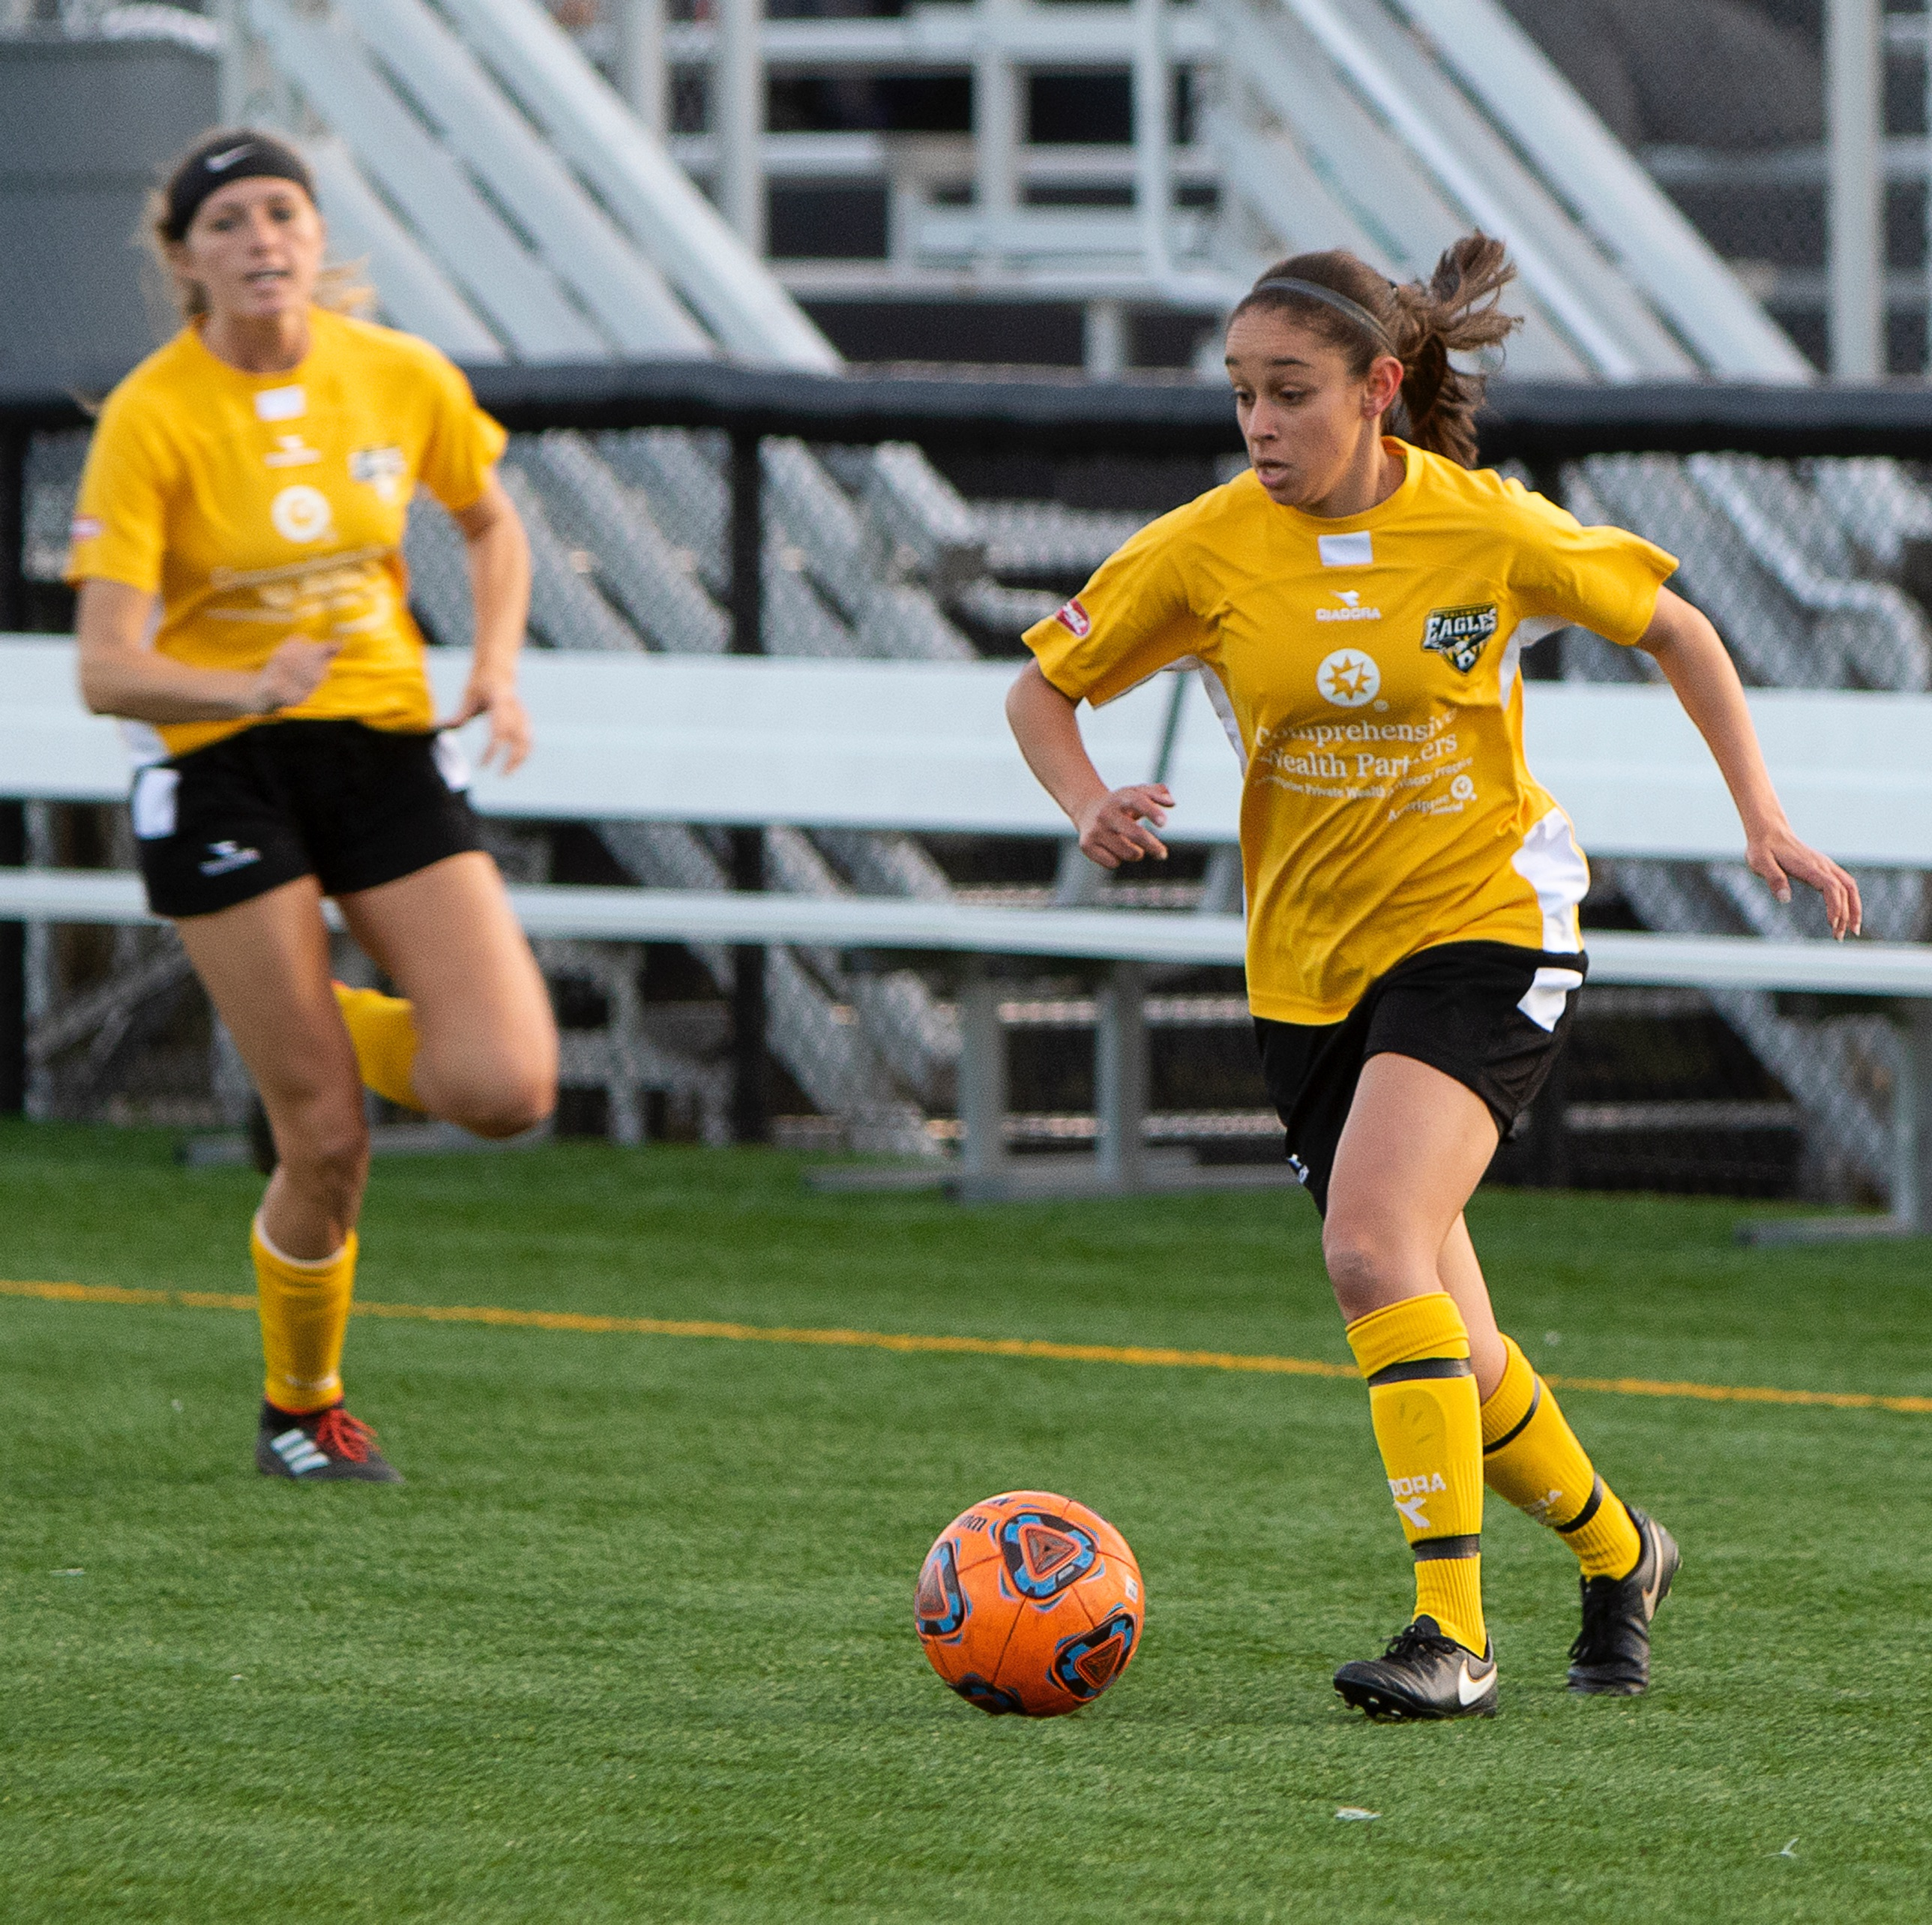 Eagles midfielder Lila Remache dribbles forward against ODU | Daniel Herlensky